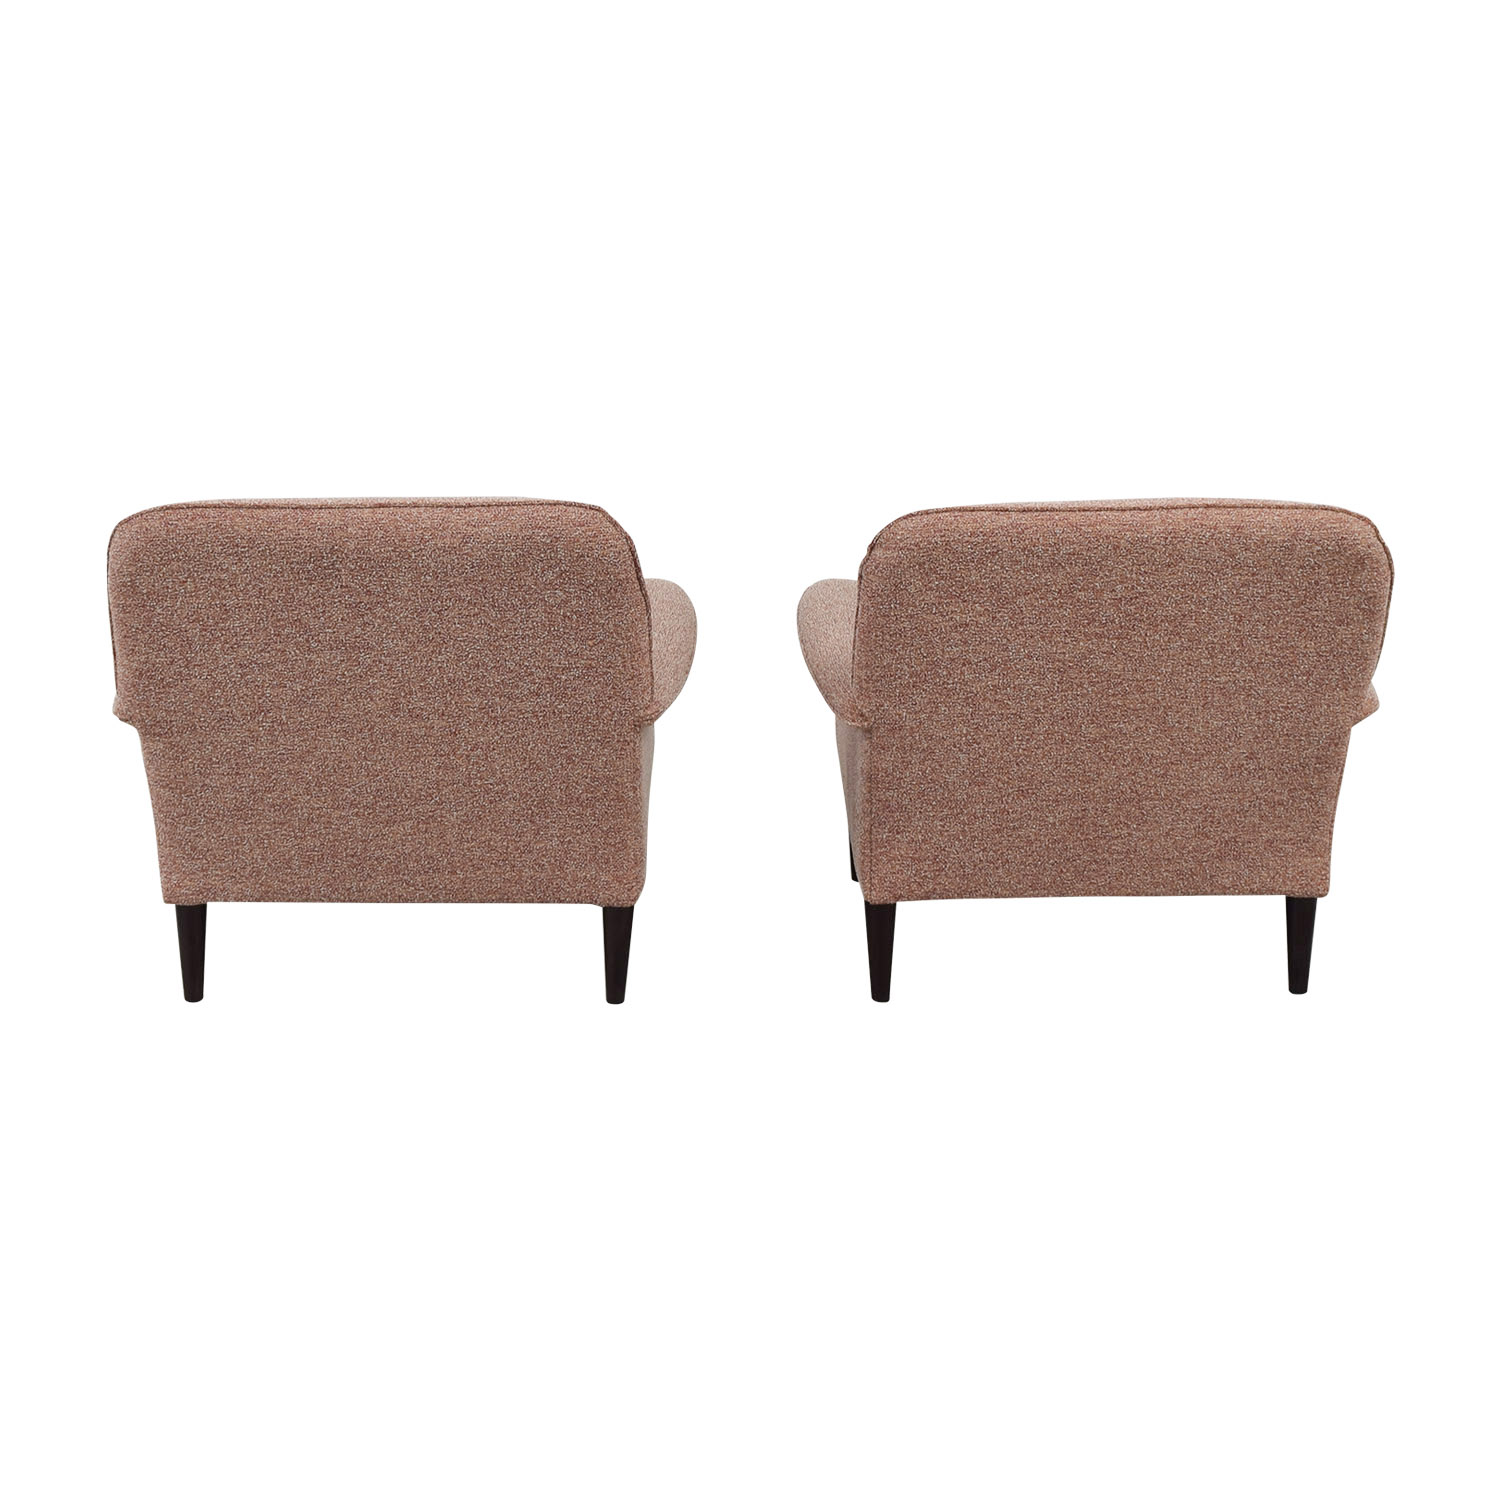 West Elm West Elm Mylo Multi-Red Accent Chairs